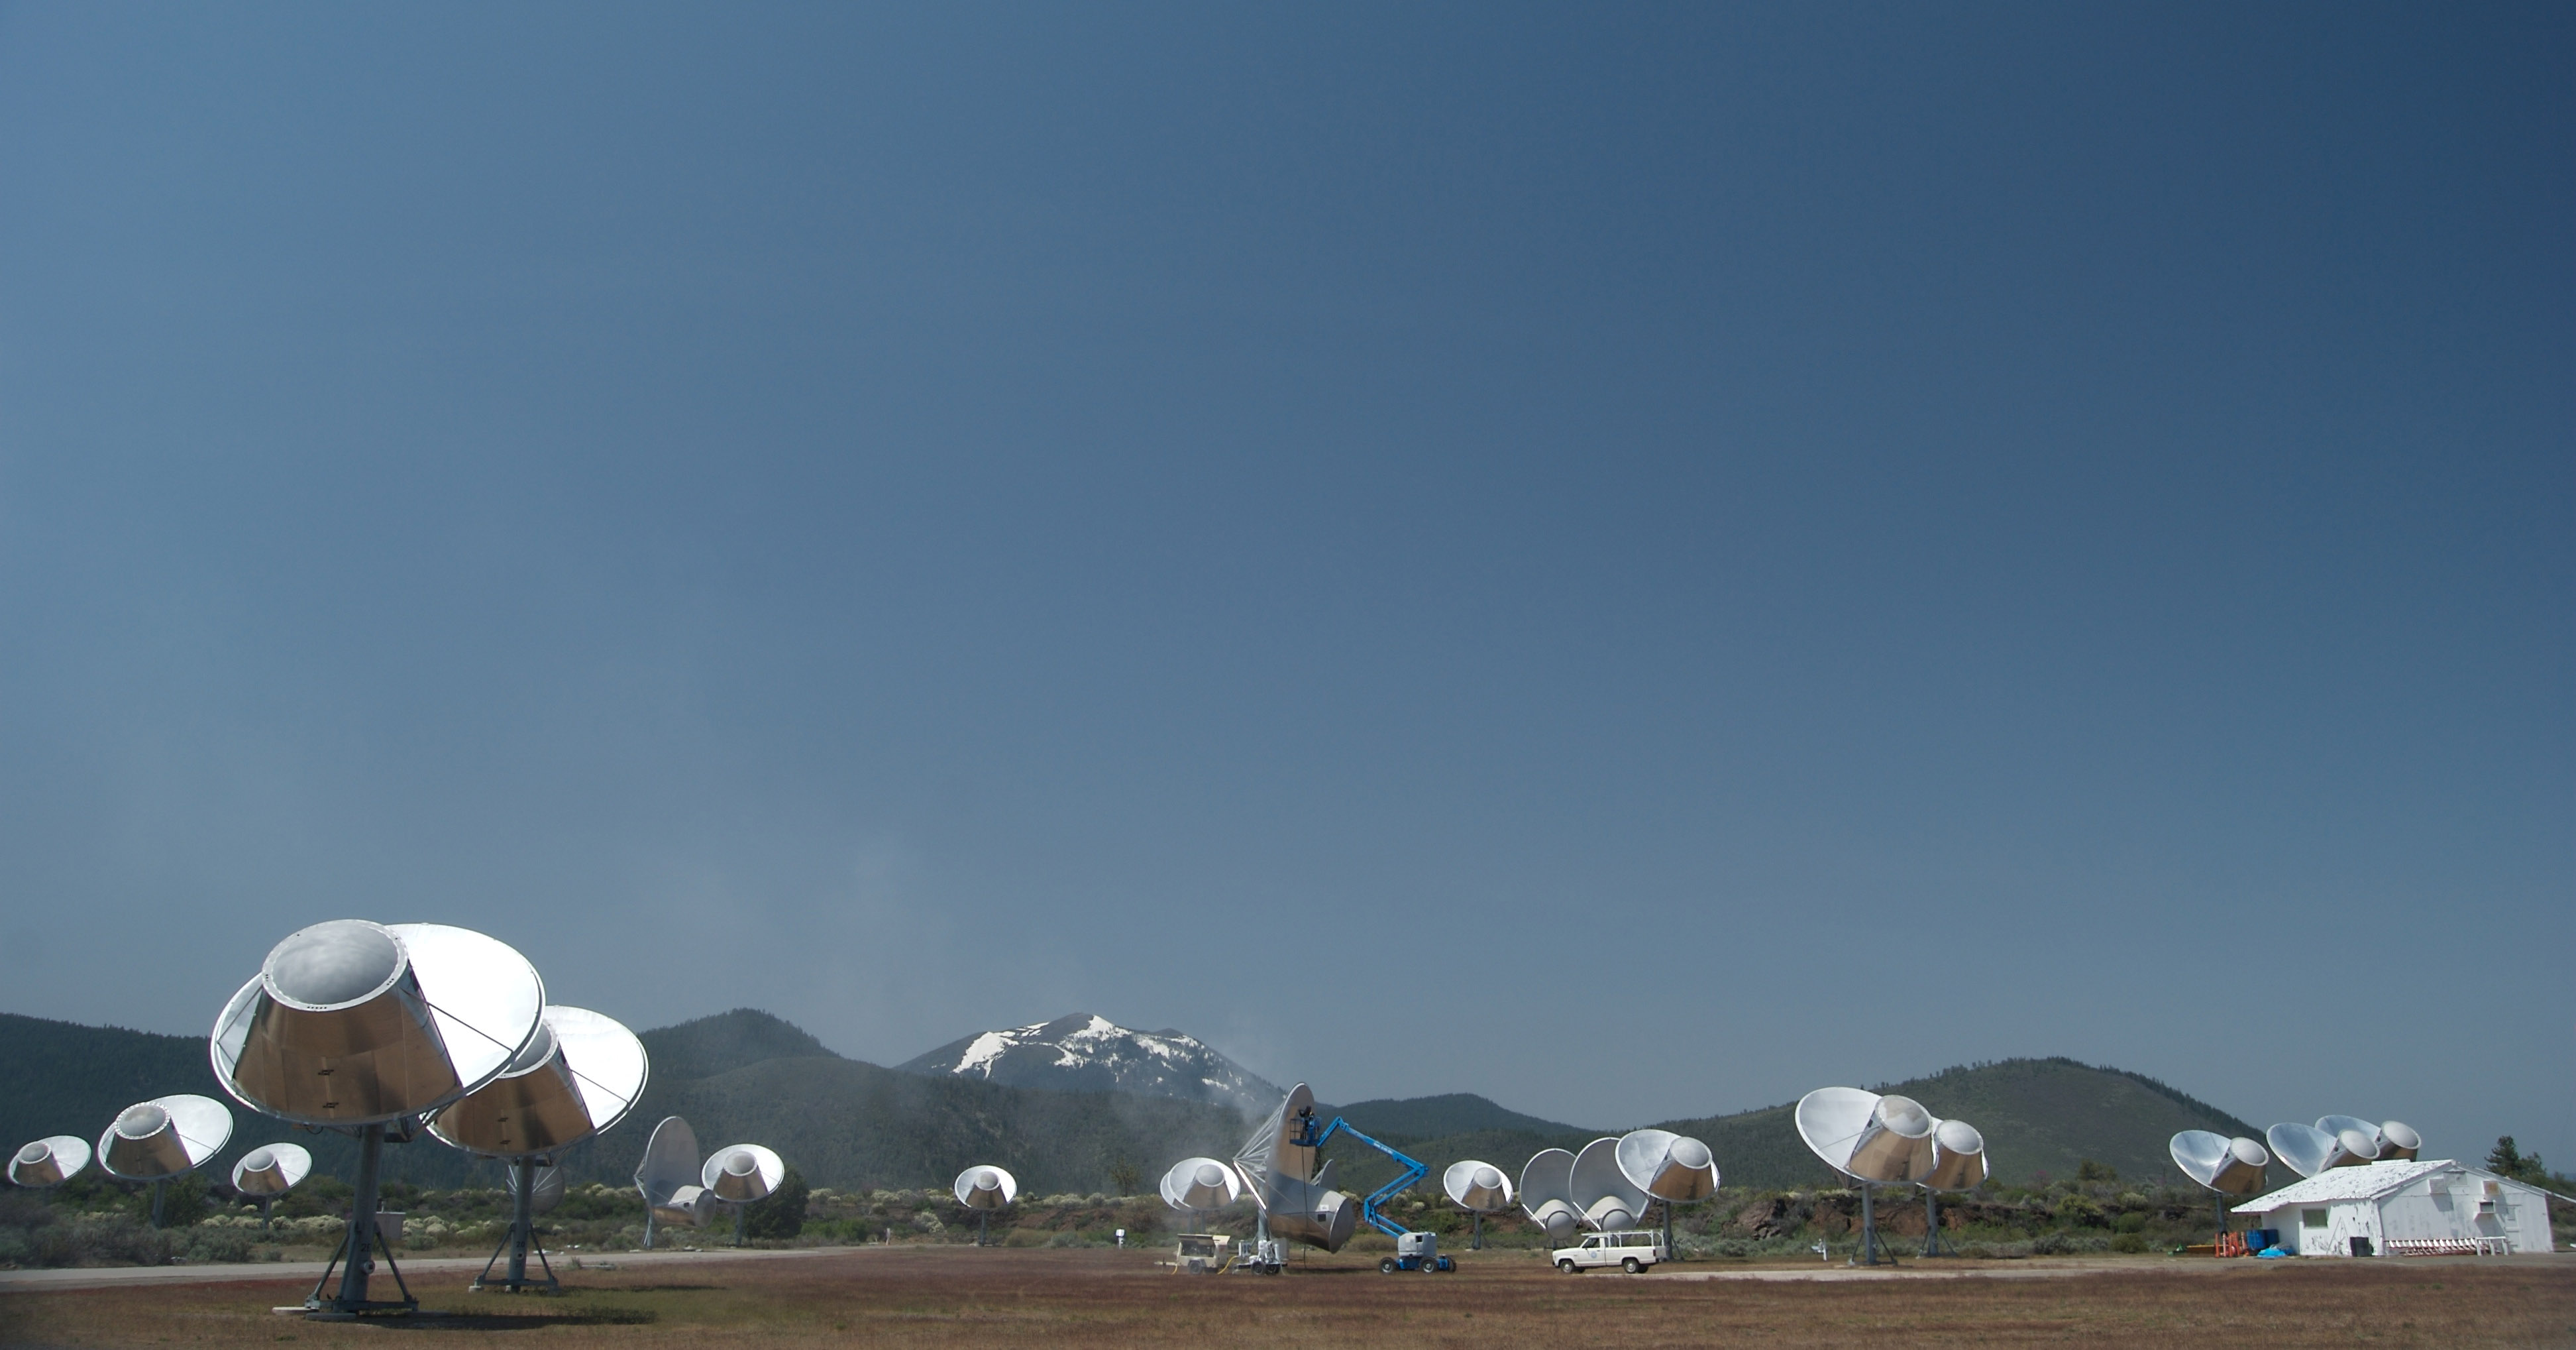 Allen Telescopes